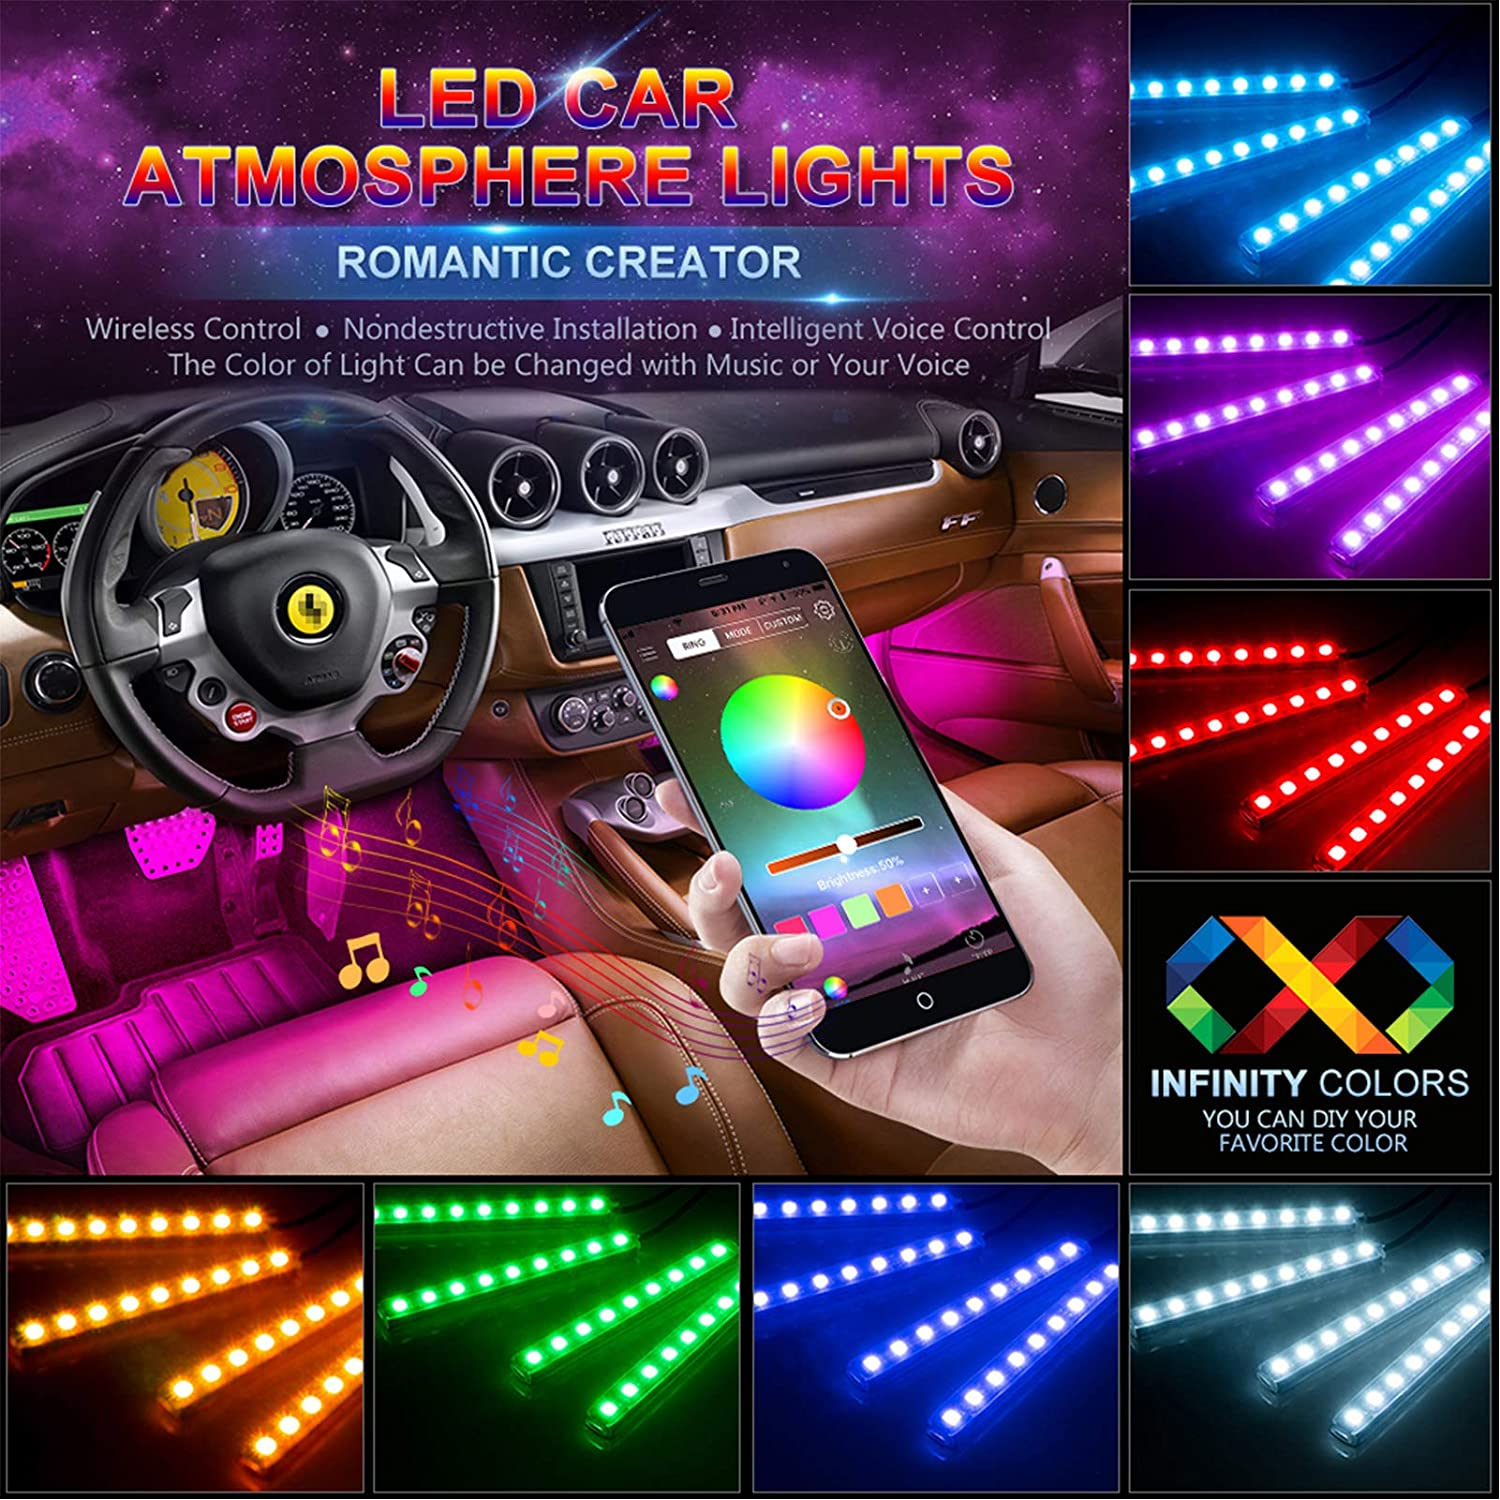 Car Decoration LED Light Foot Ambient Lights With USB Cigarette Music Control App RGB Multiple Modes